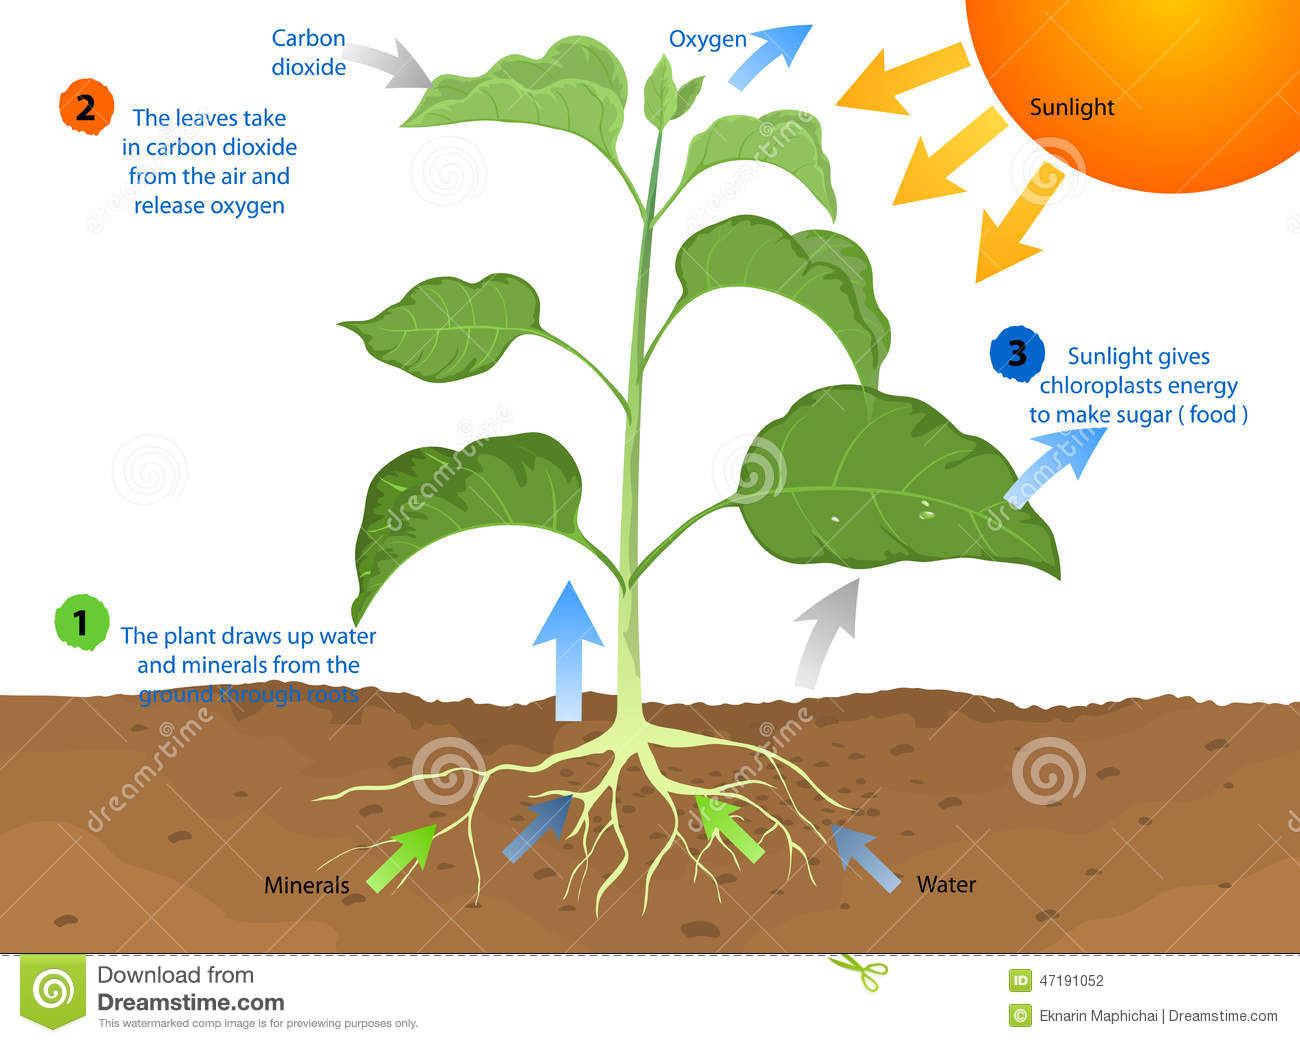 By photosynthesis which is the process